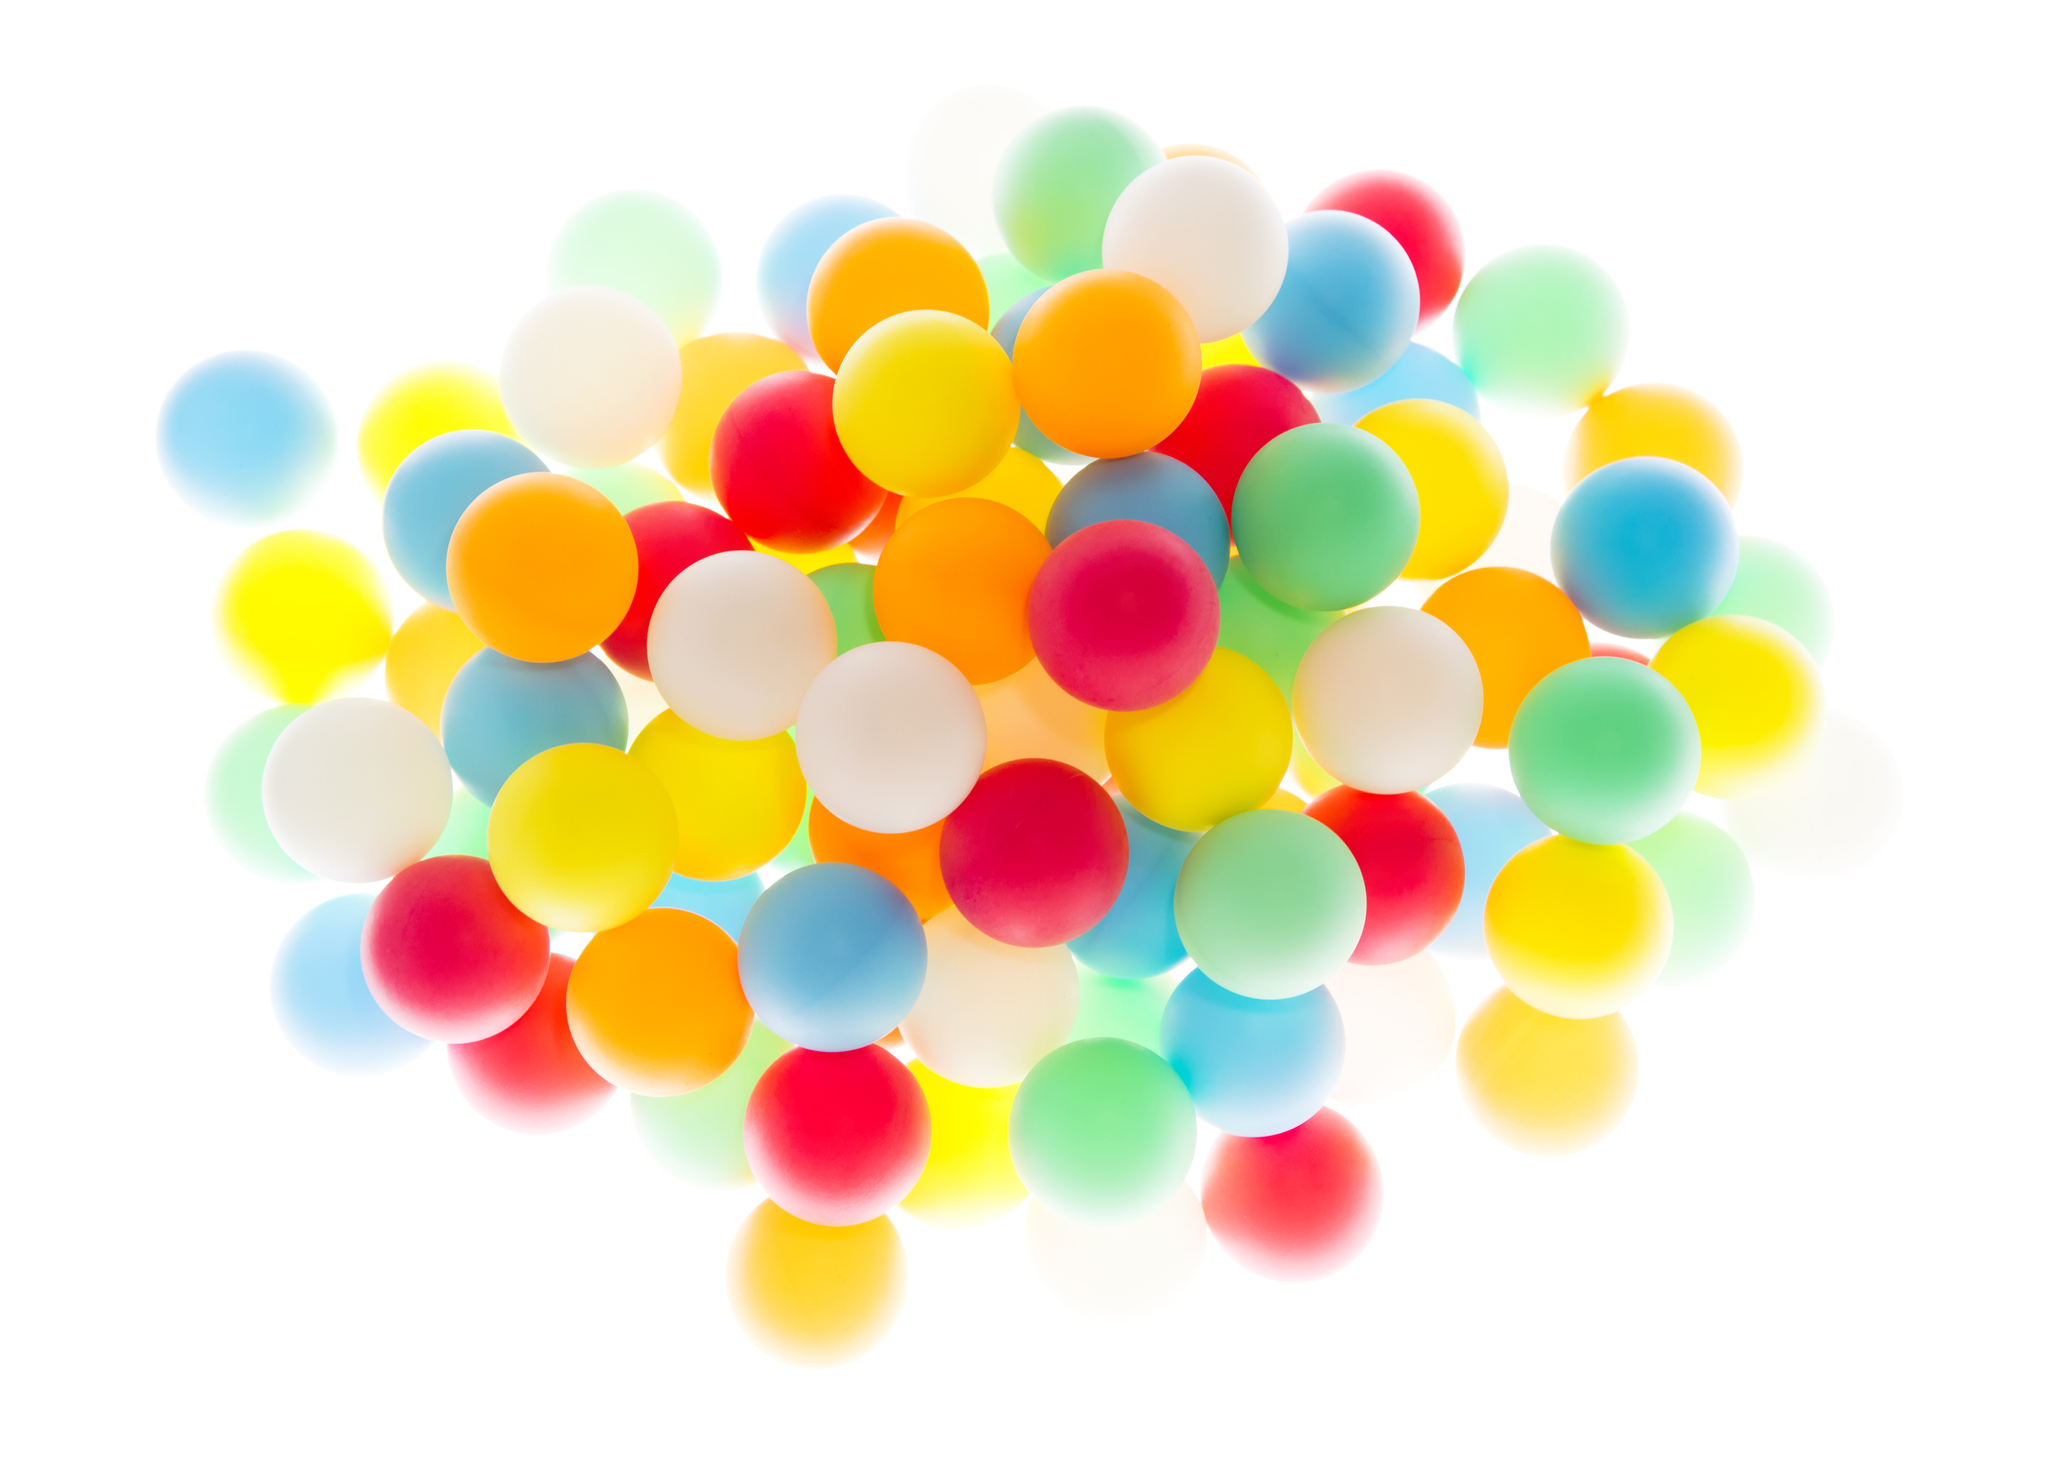 Tight cluster of multi colored spheres on high key white background